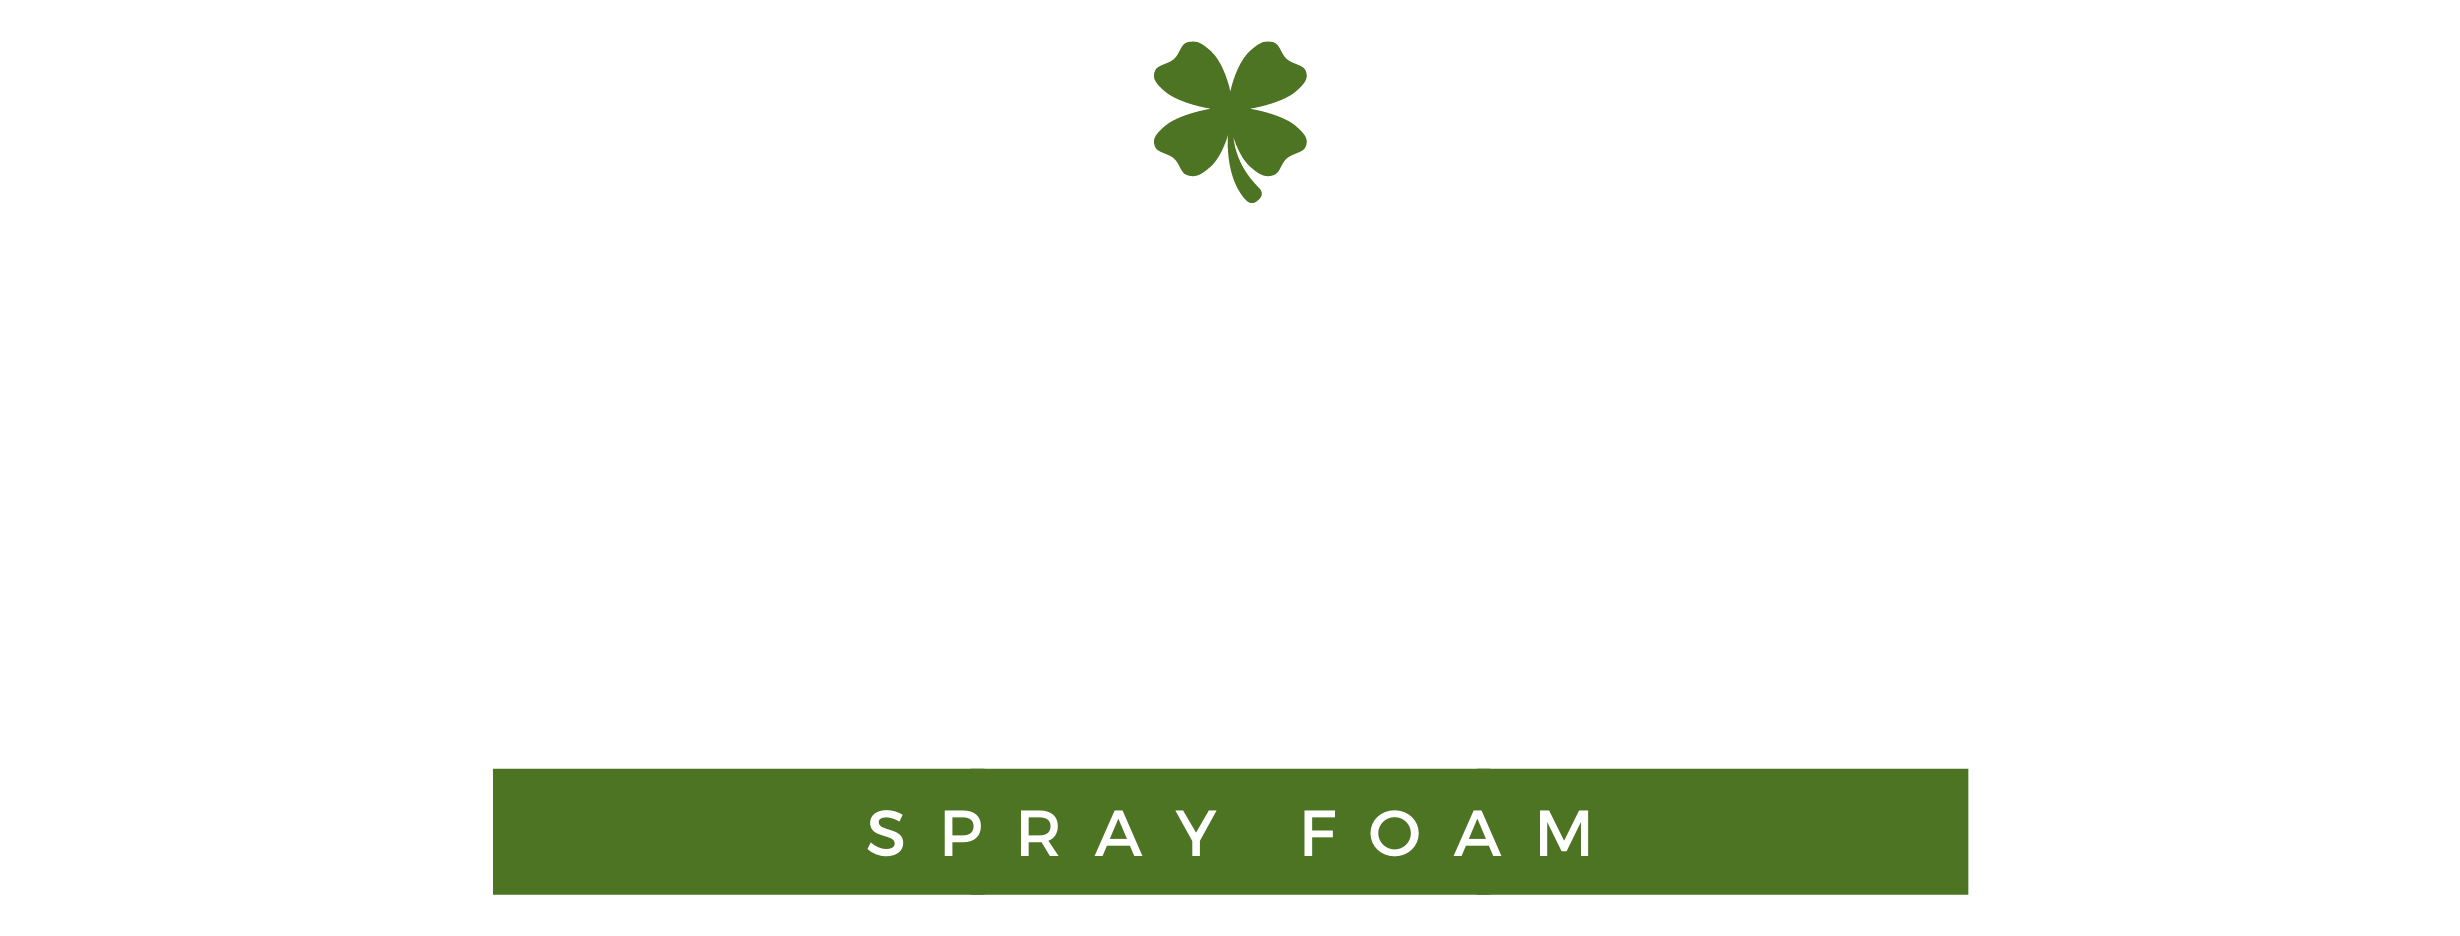 McNamara Spray Foam